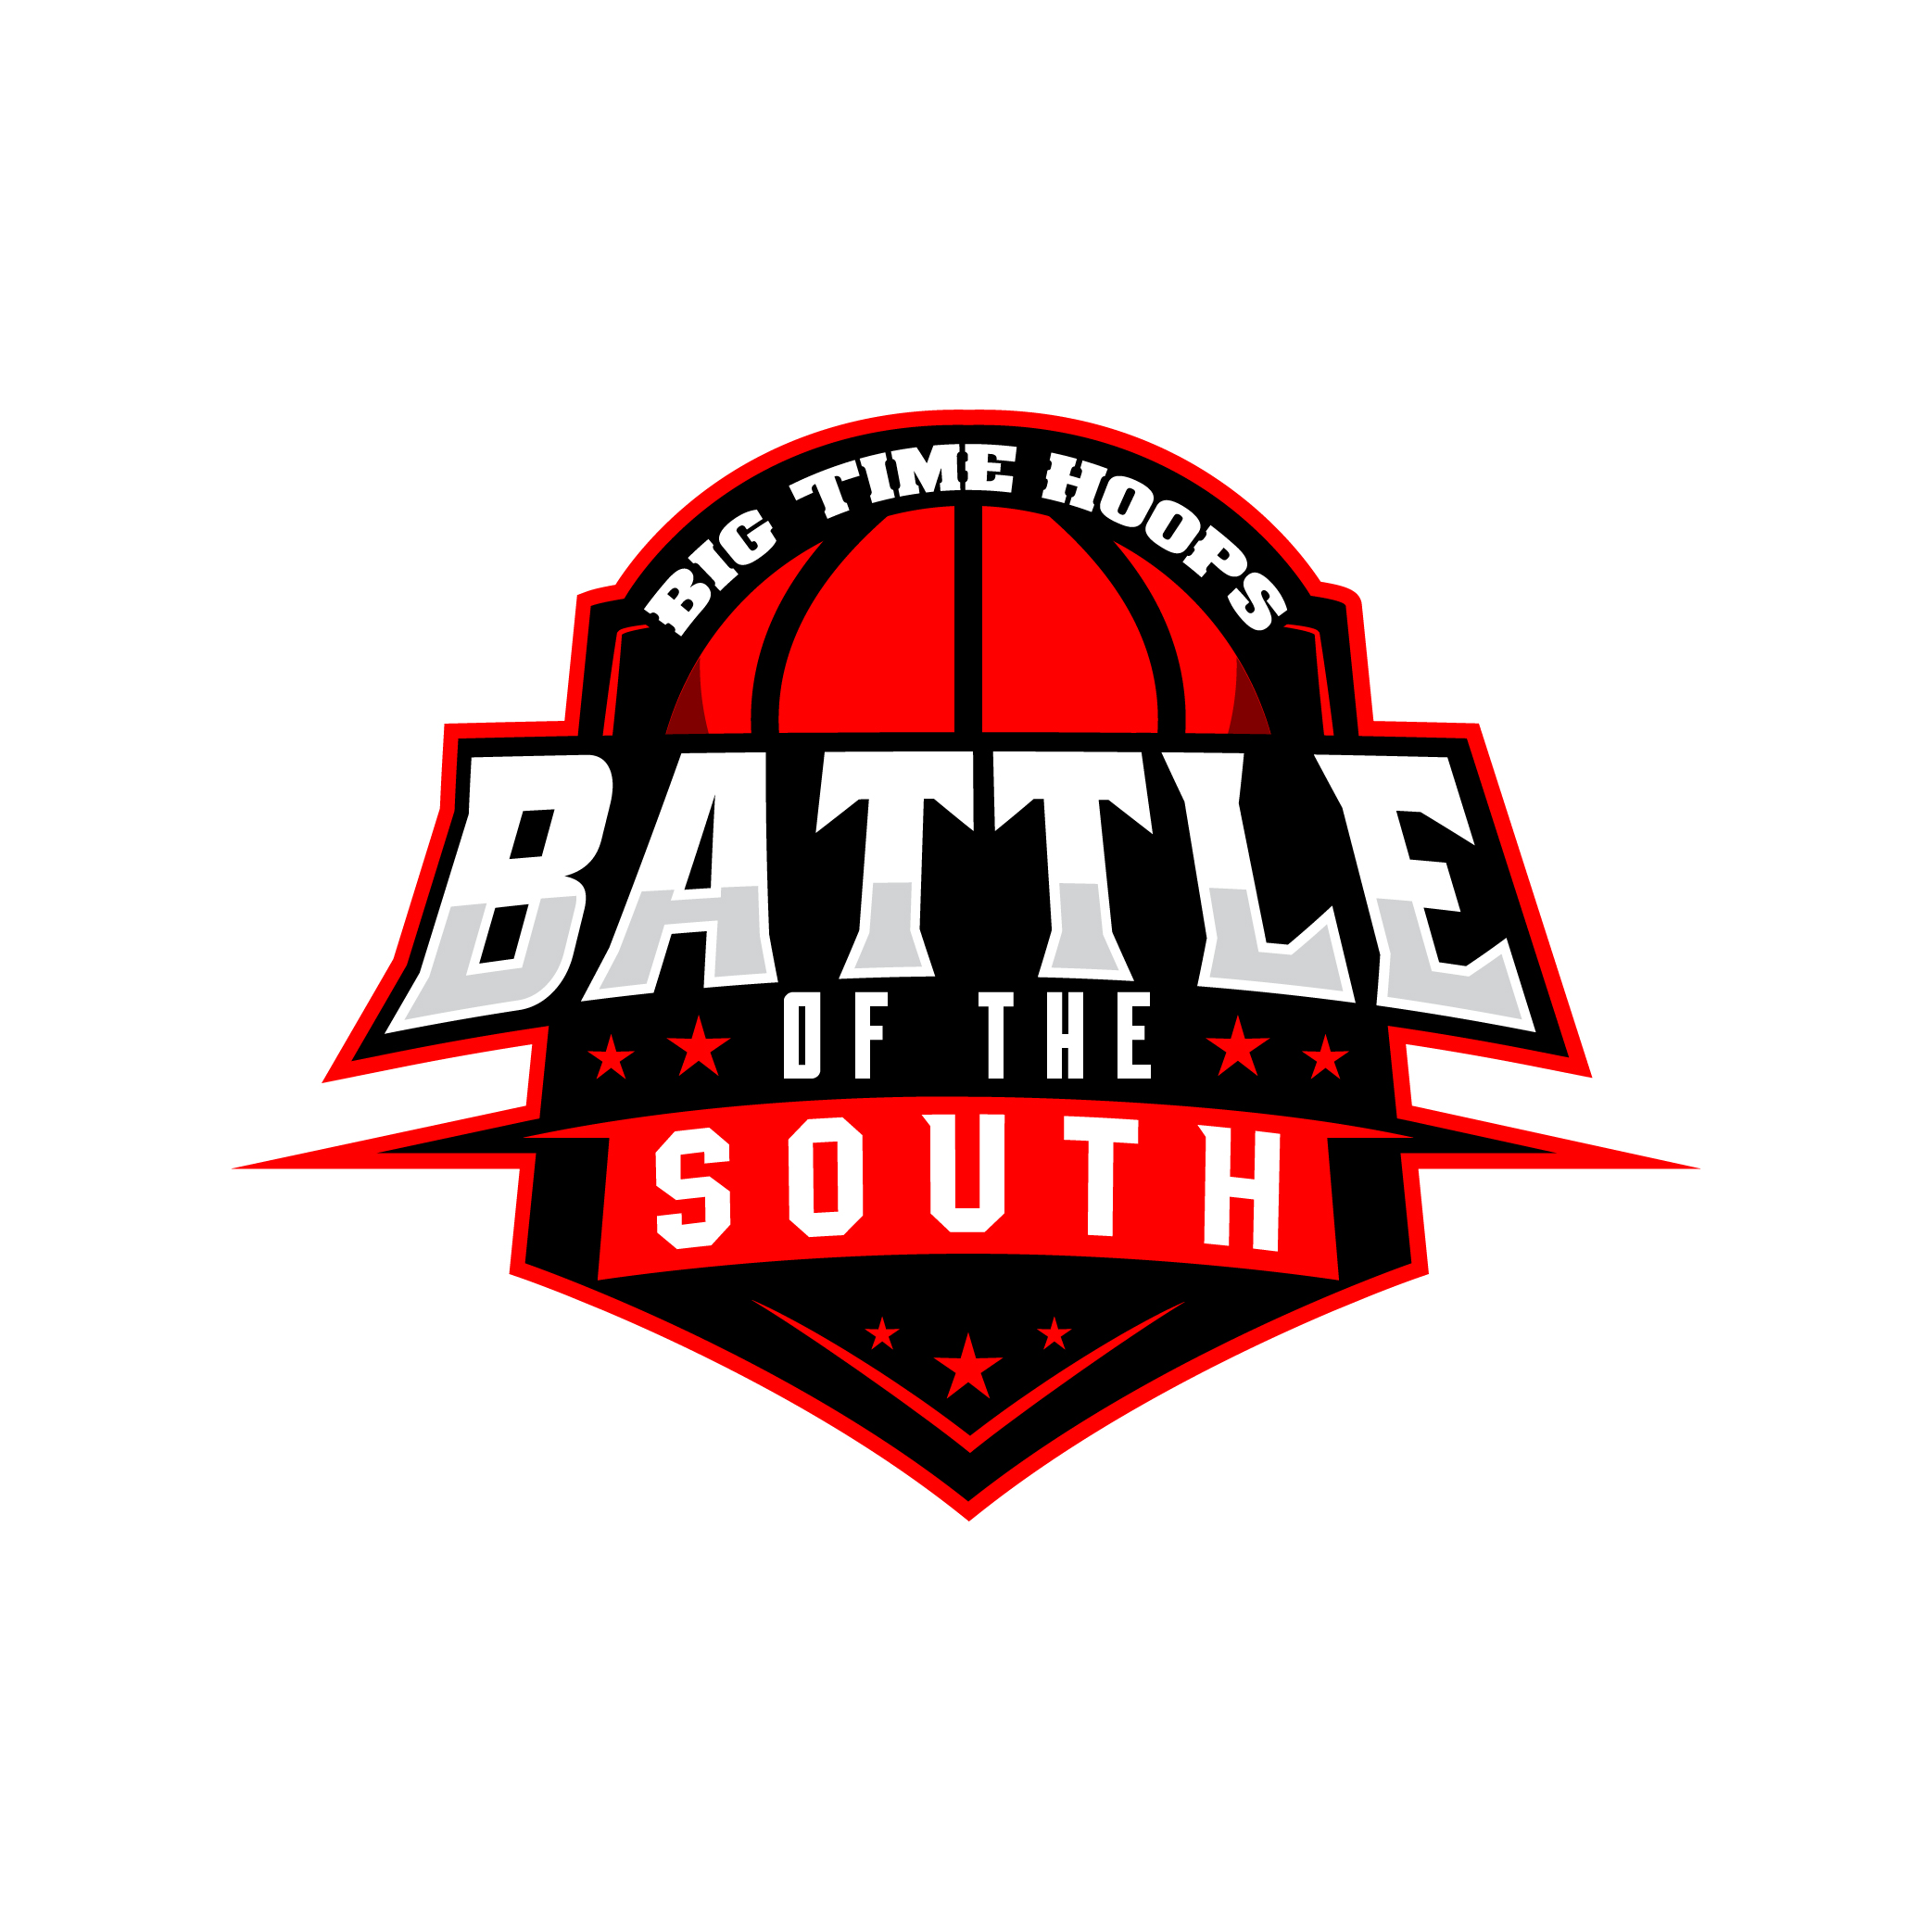 BATTLE OF THE SOUTH – DALLAS, TX